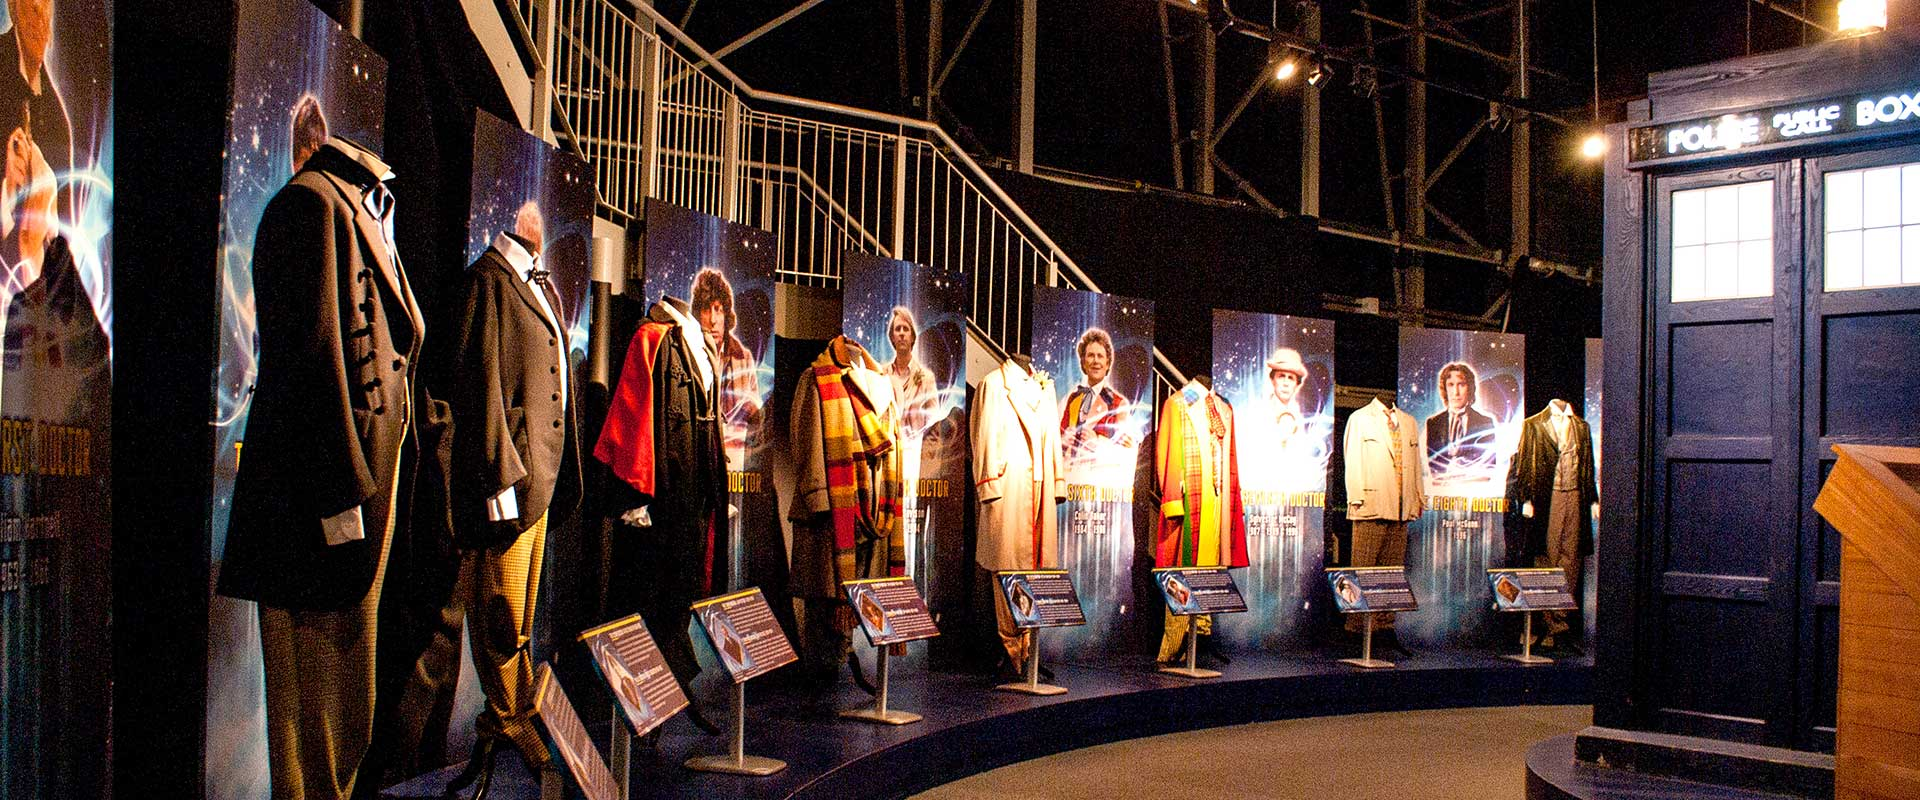 Dr Who Experience Cardiff costume graphic panels